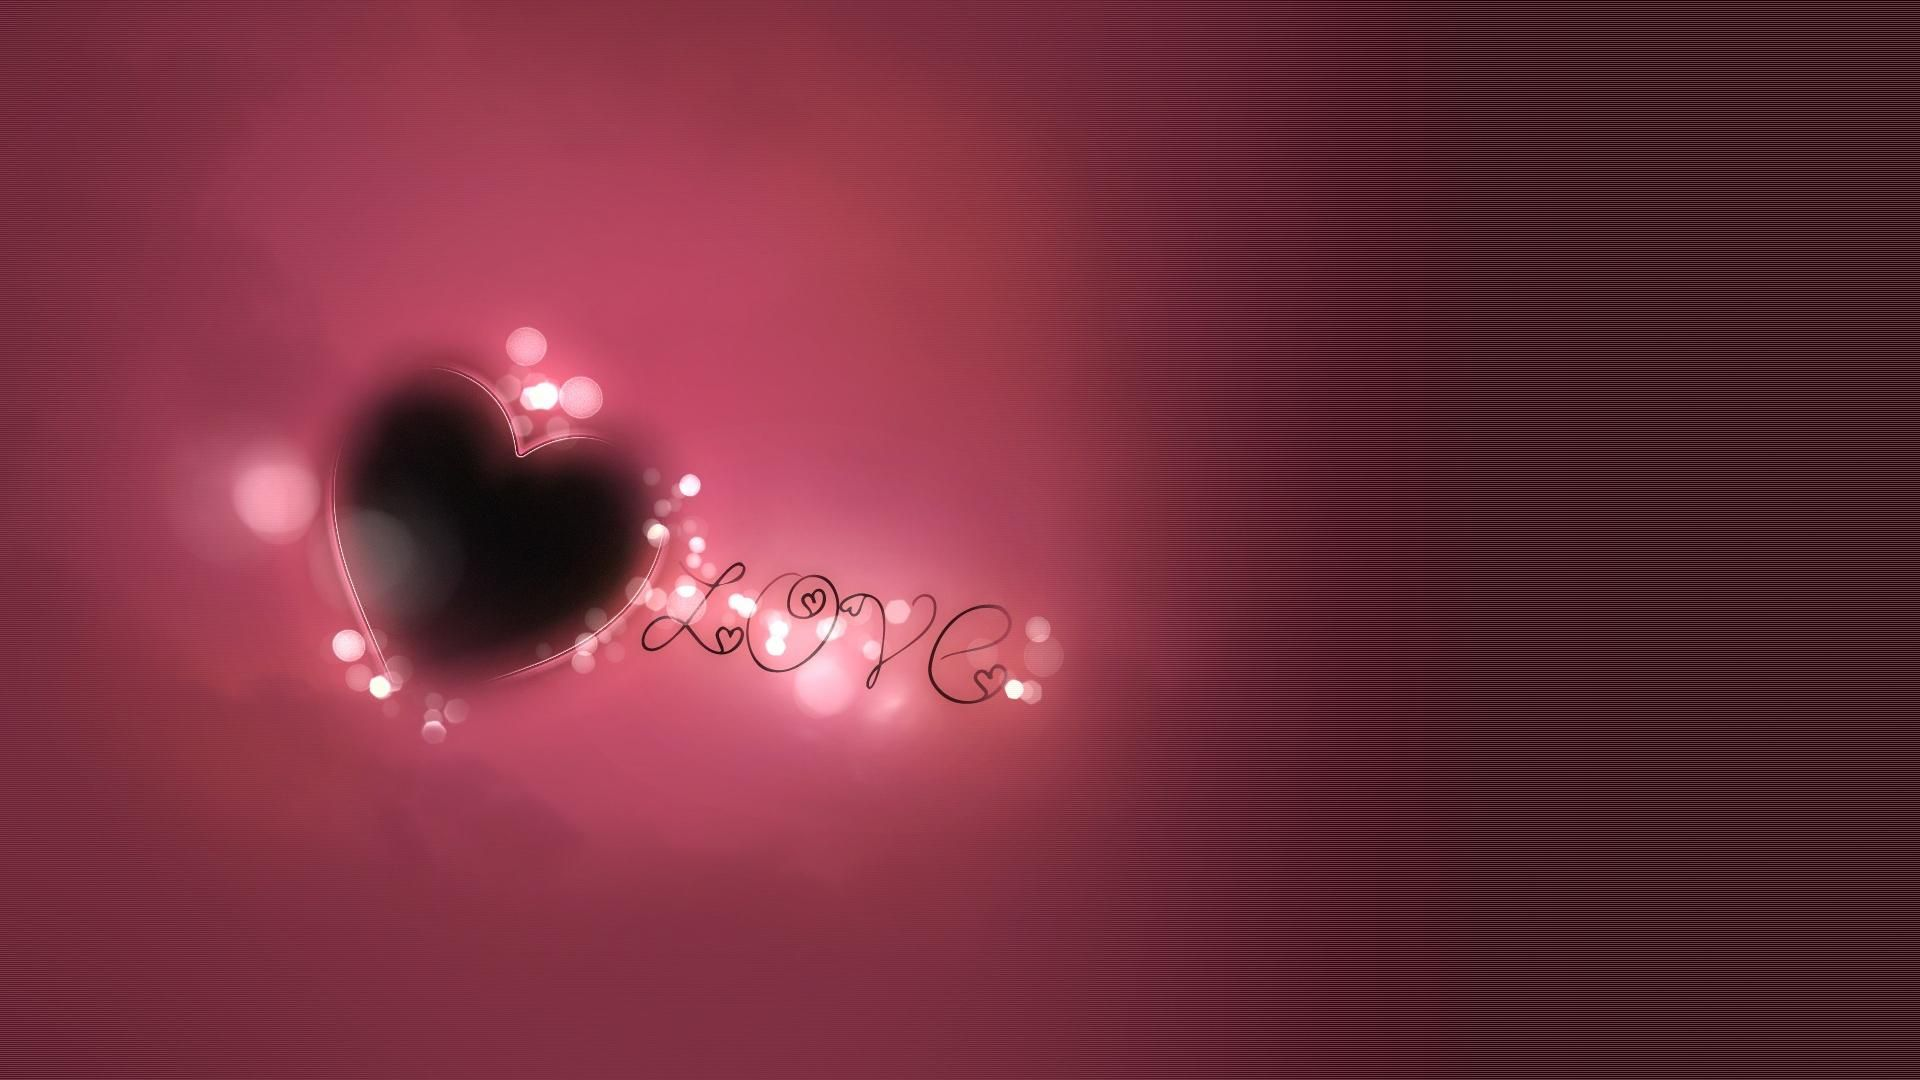 Heart Love Pictures